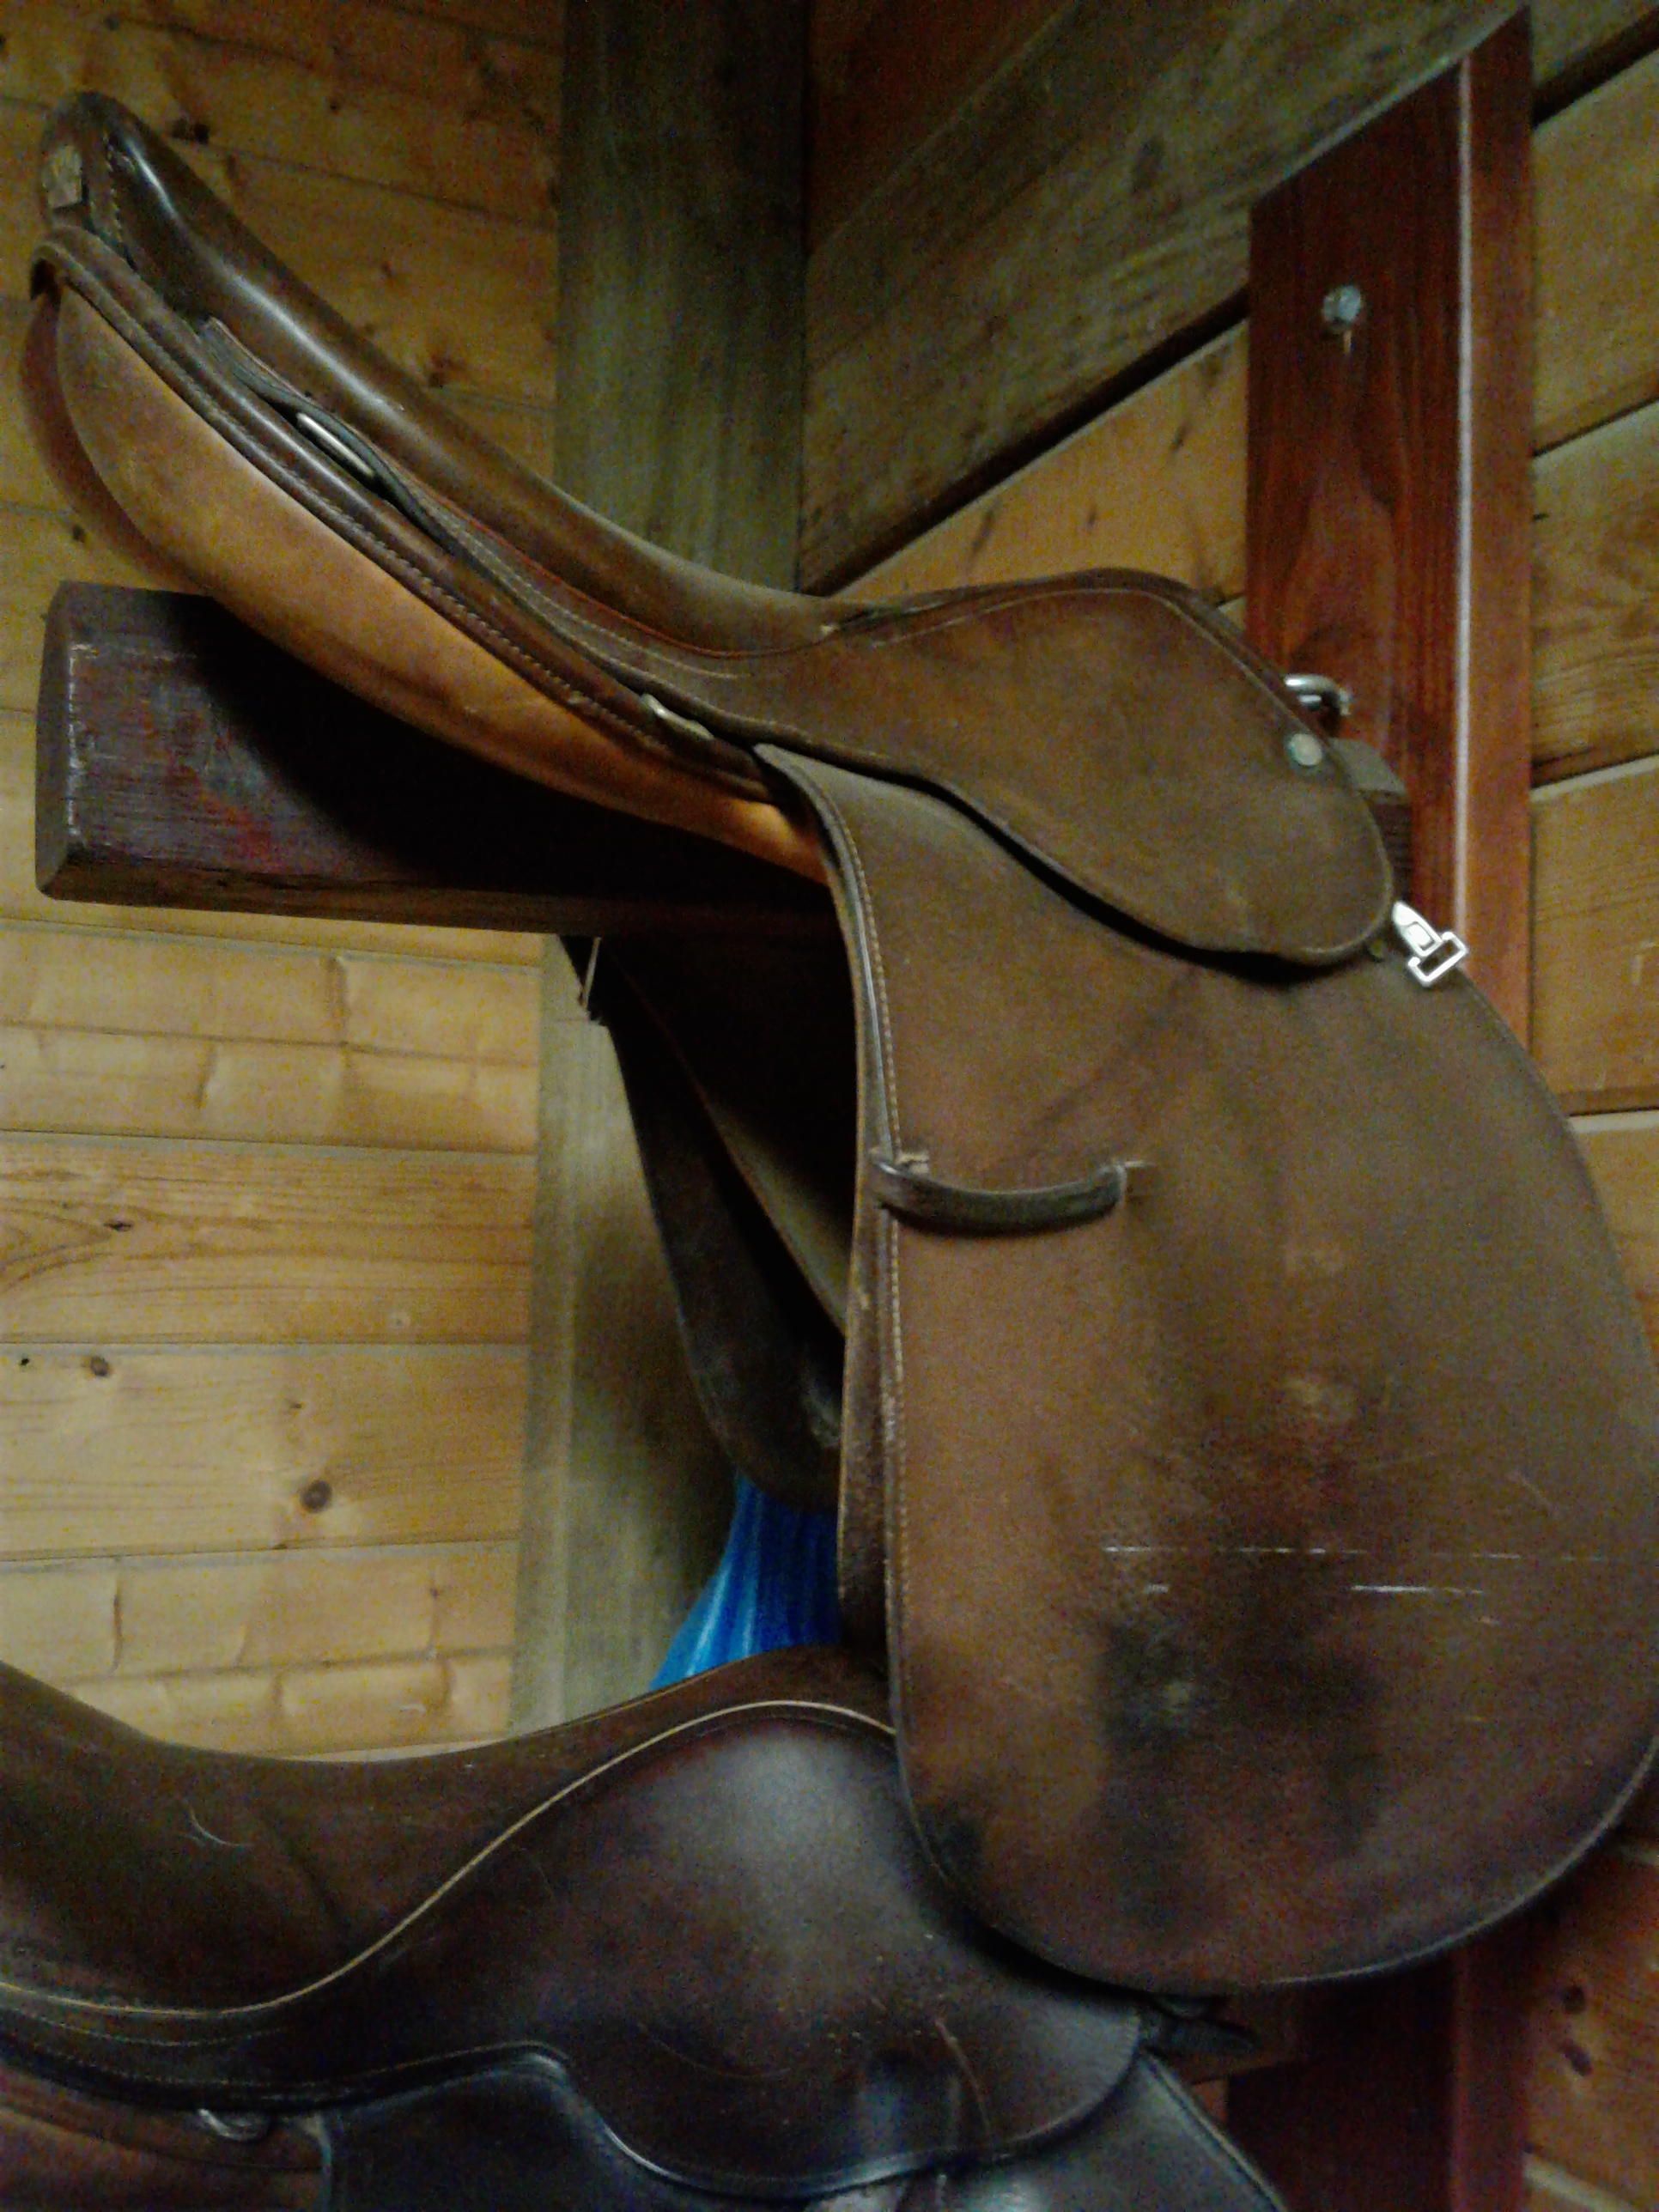 Saddles in need of TLC during storage